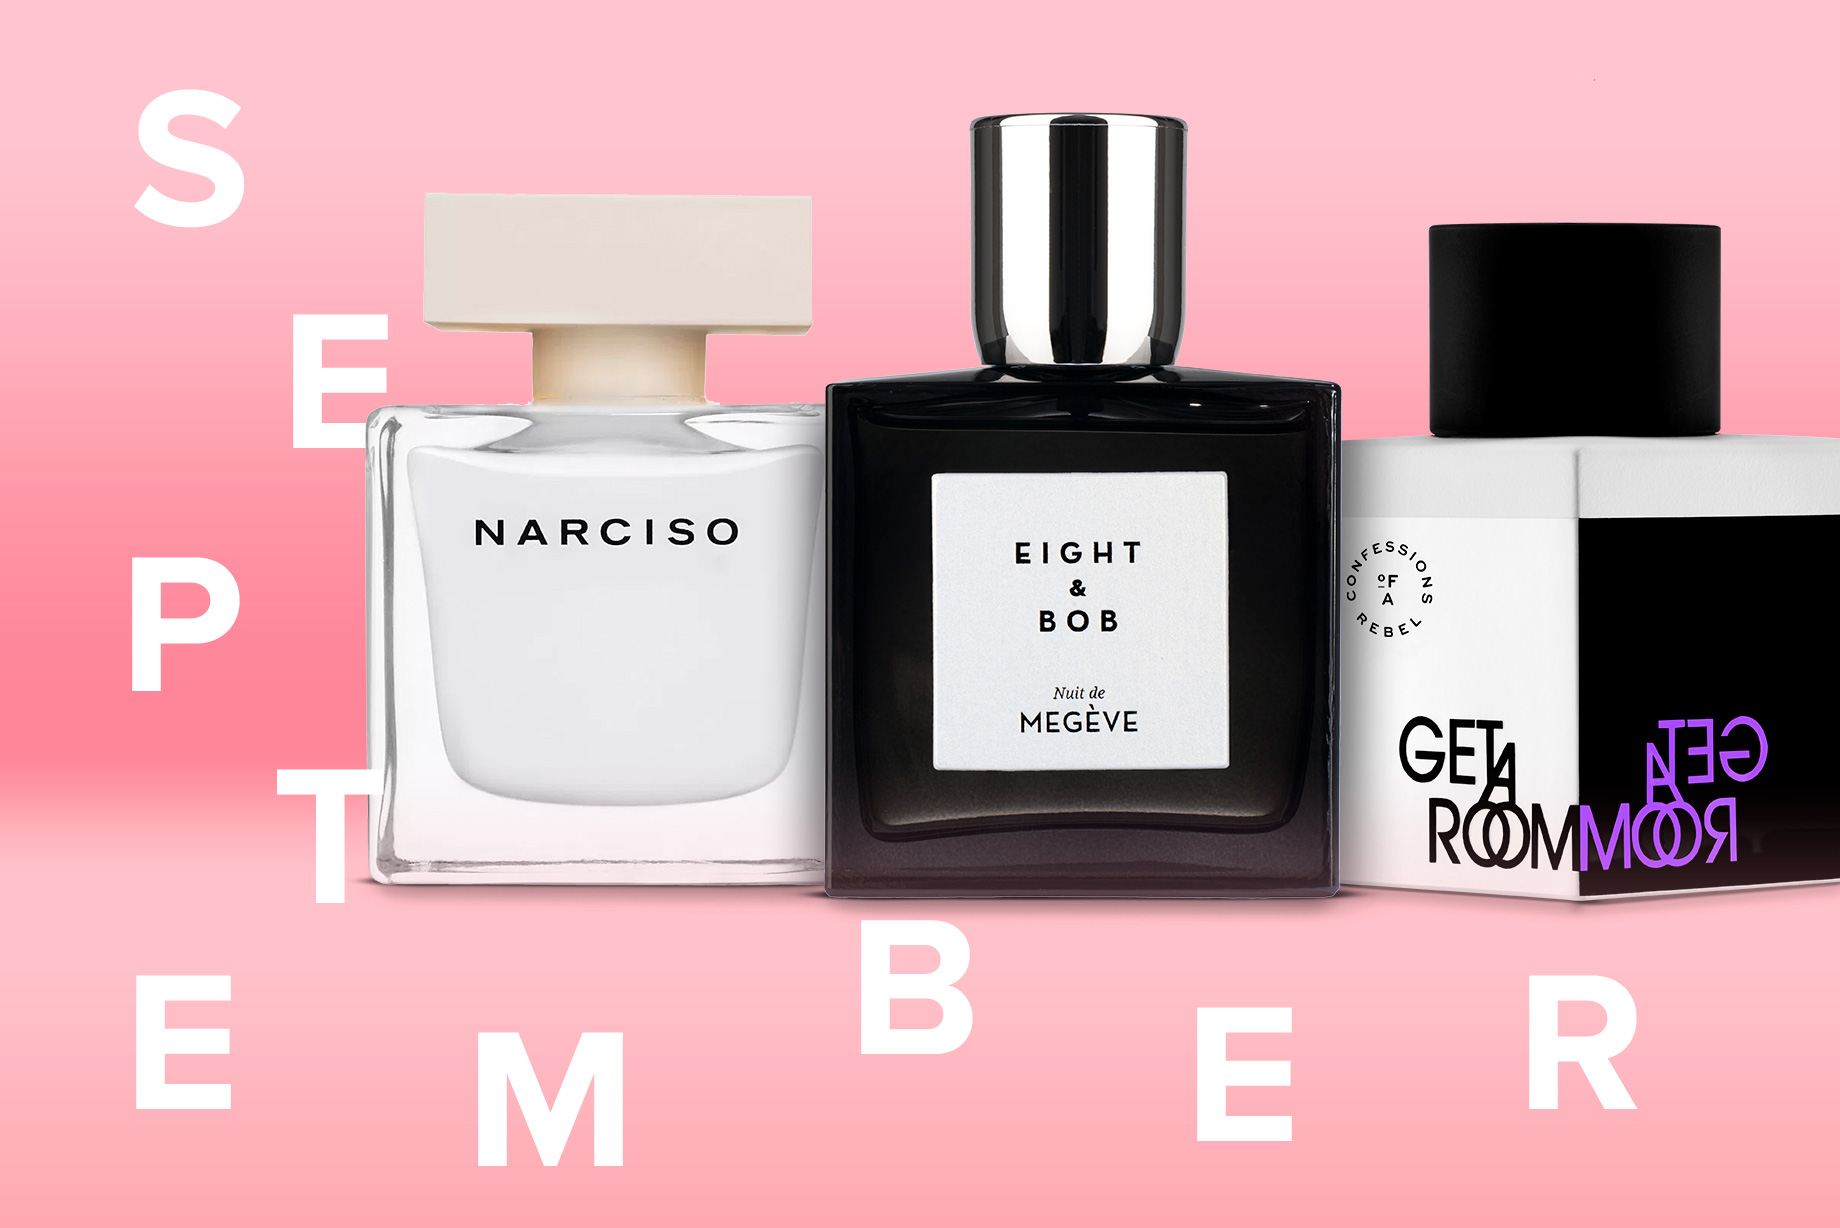 Born in September: Personality Traits and Perfume Match